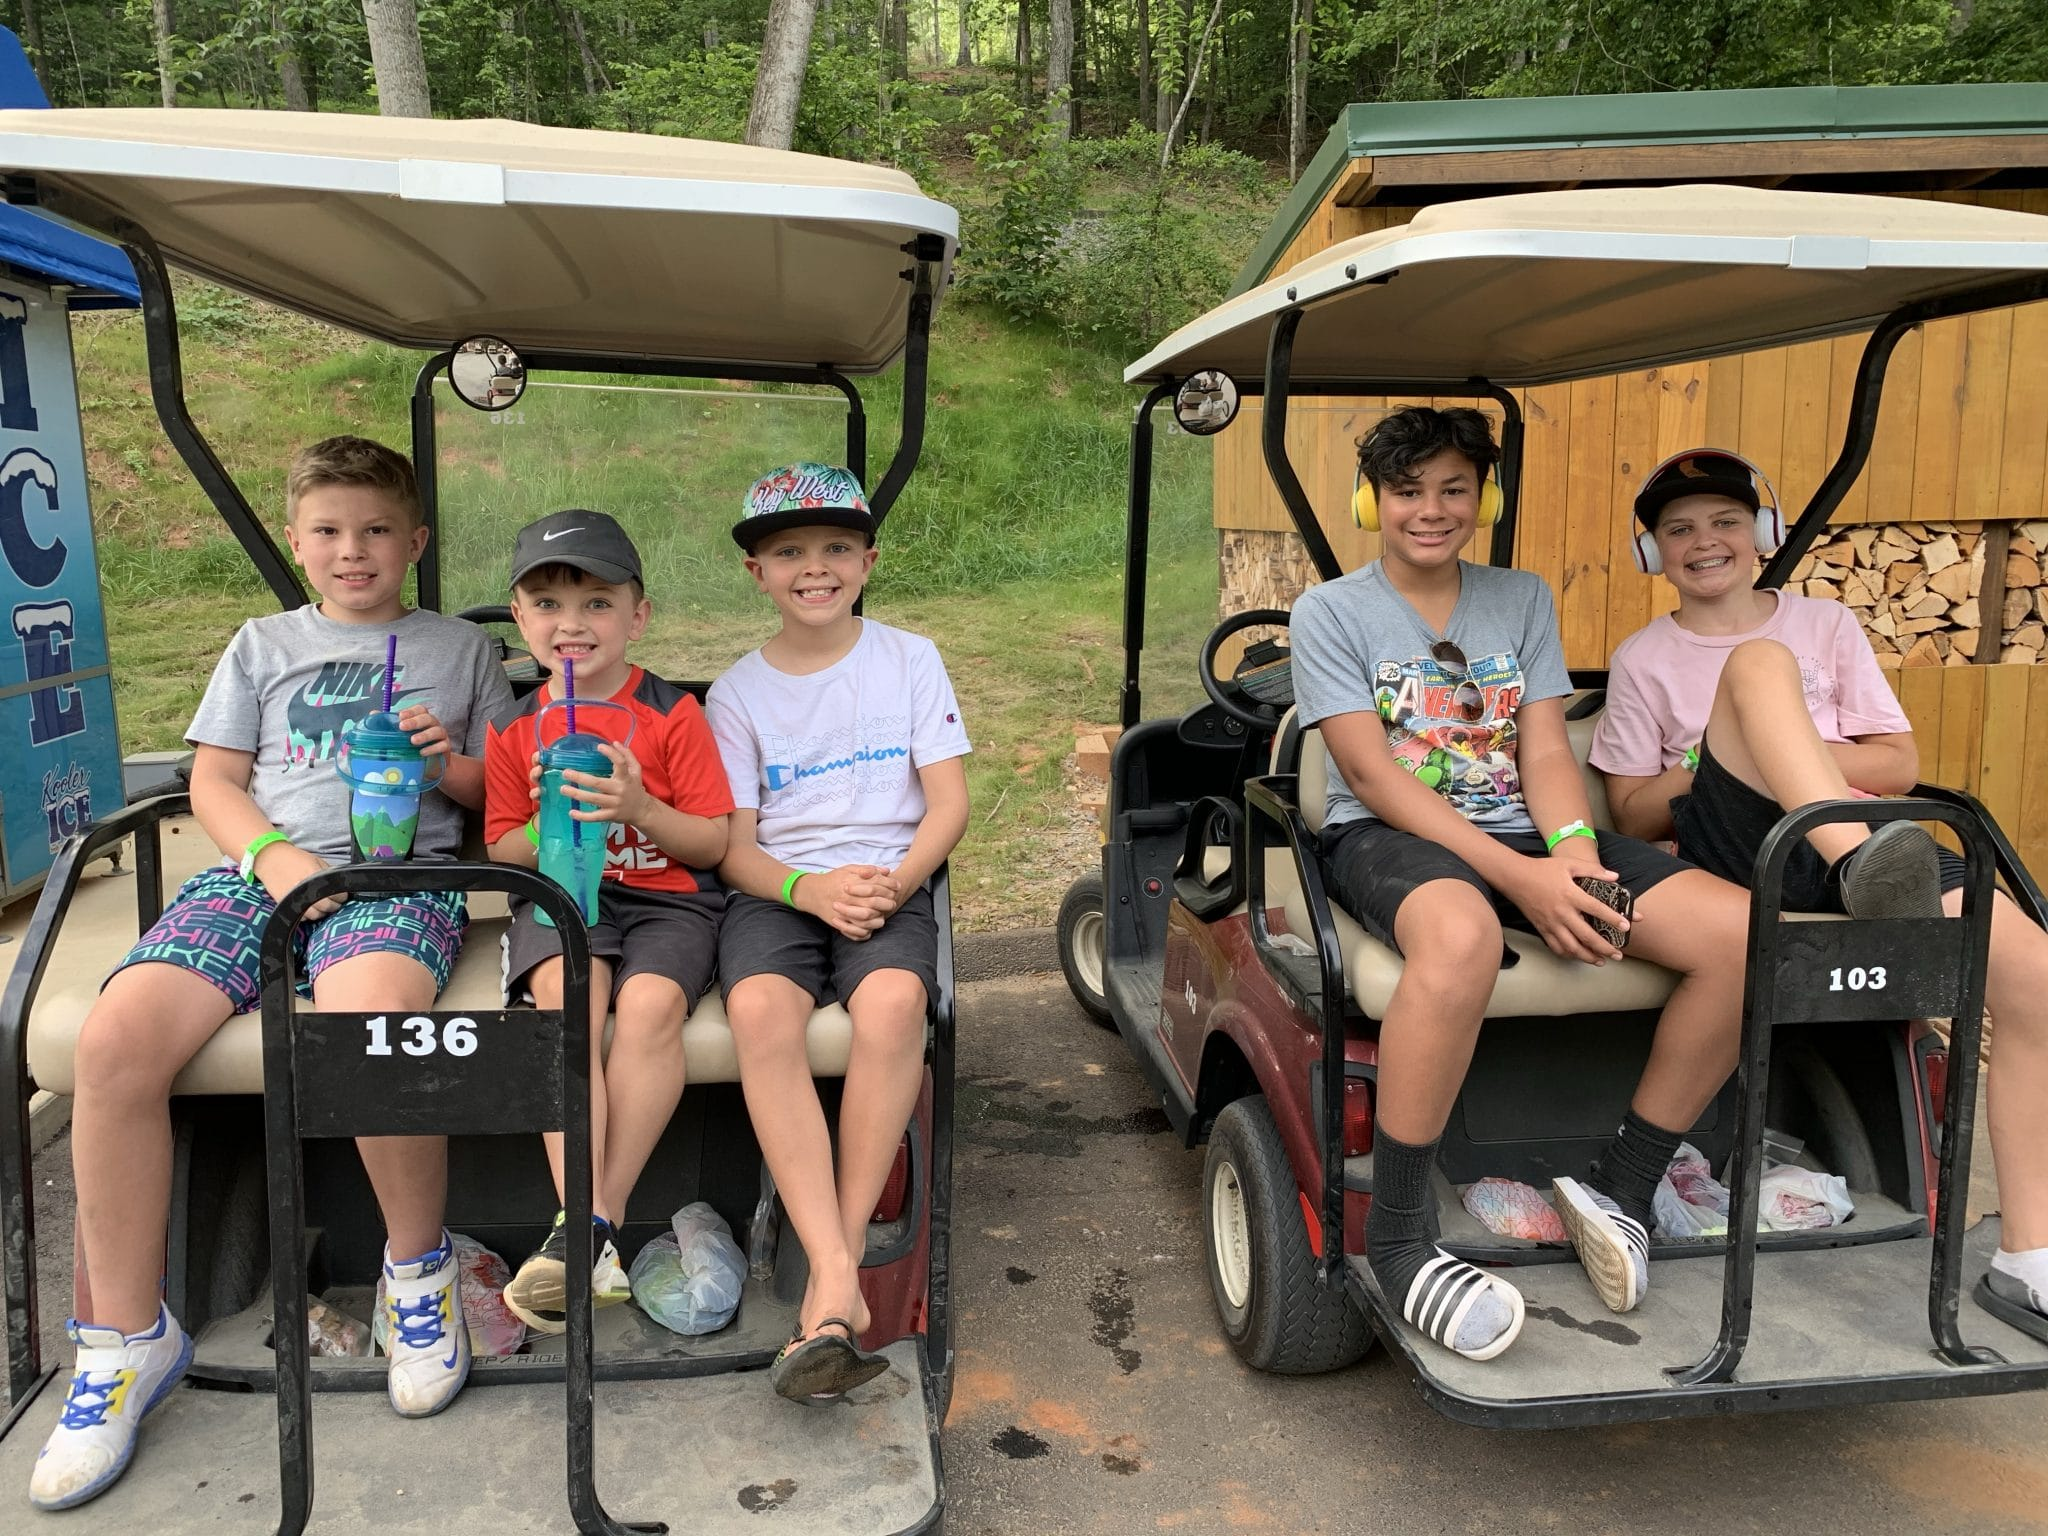 Jellystone Golden Valley, North Carolina Camping, Golf Cart rentals, Stilettos and Diapers